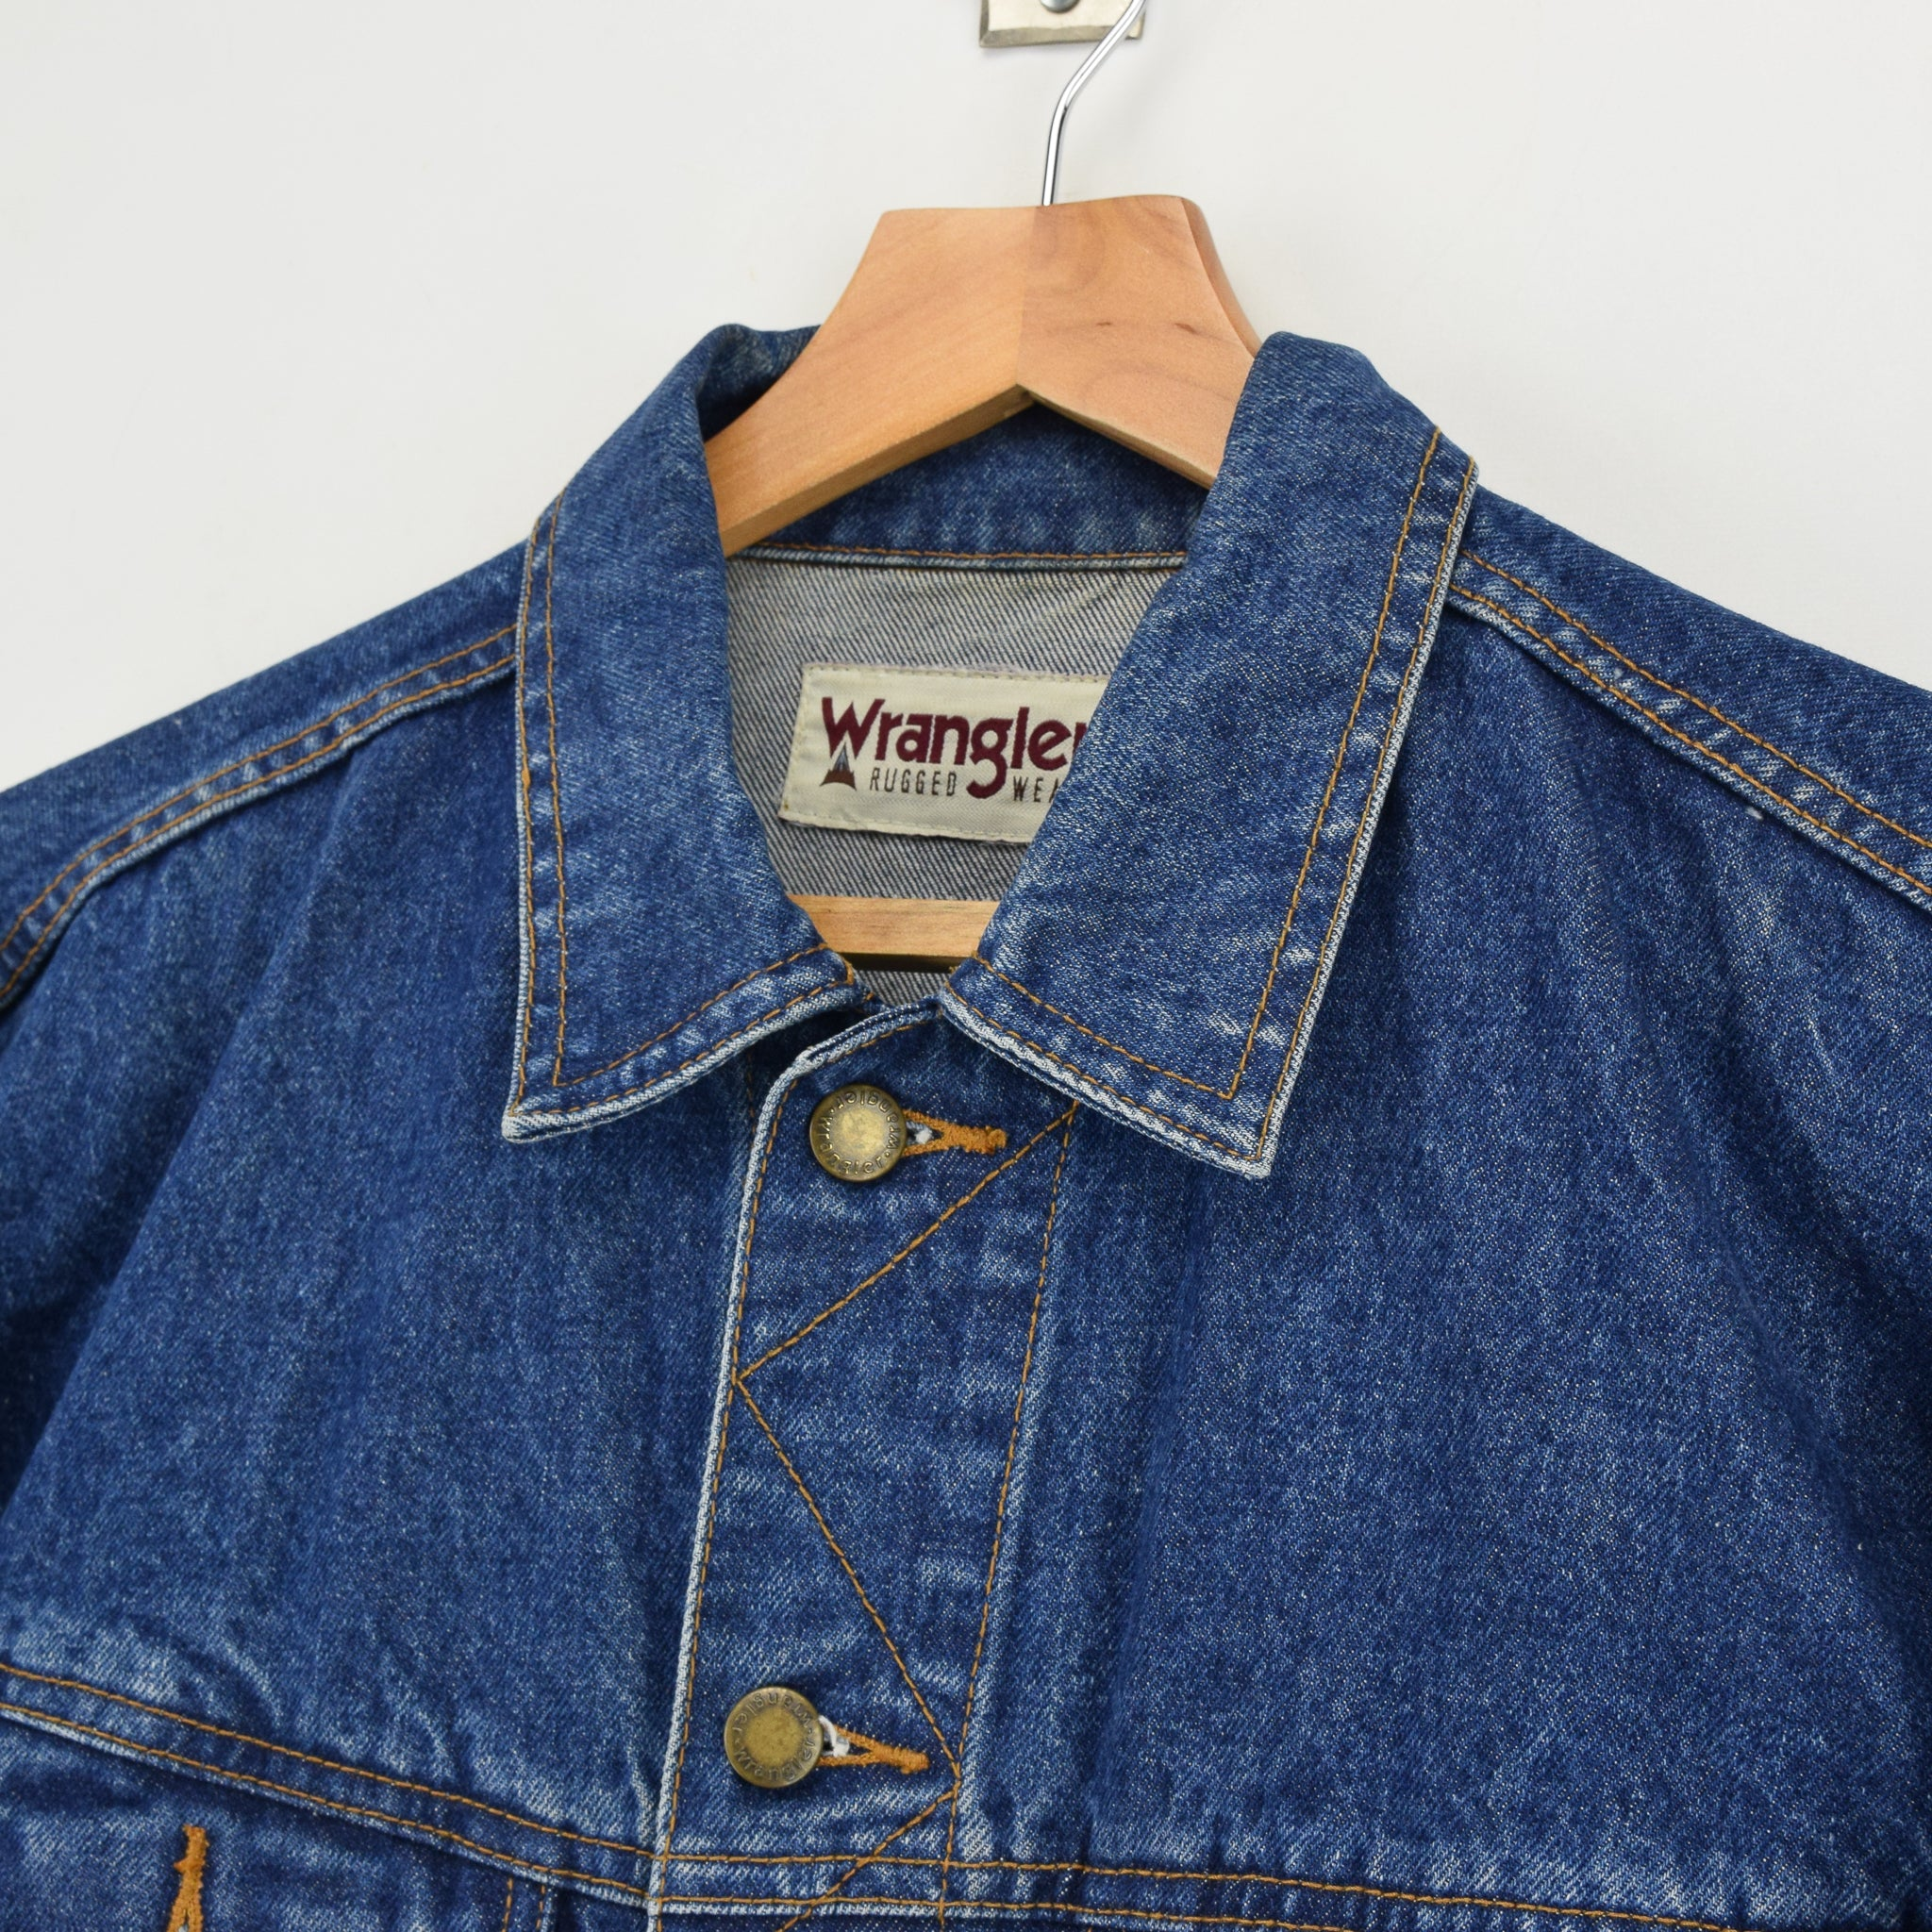 Vintage Wrangler Rugged Wear Washed Dark Blue Denim Trucker Style Jacket L collar